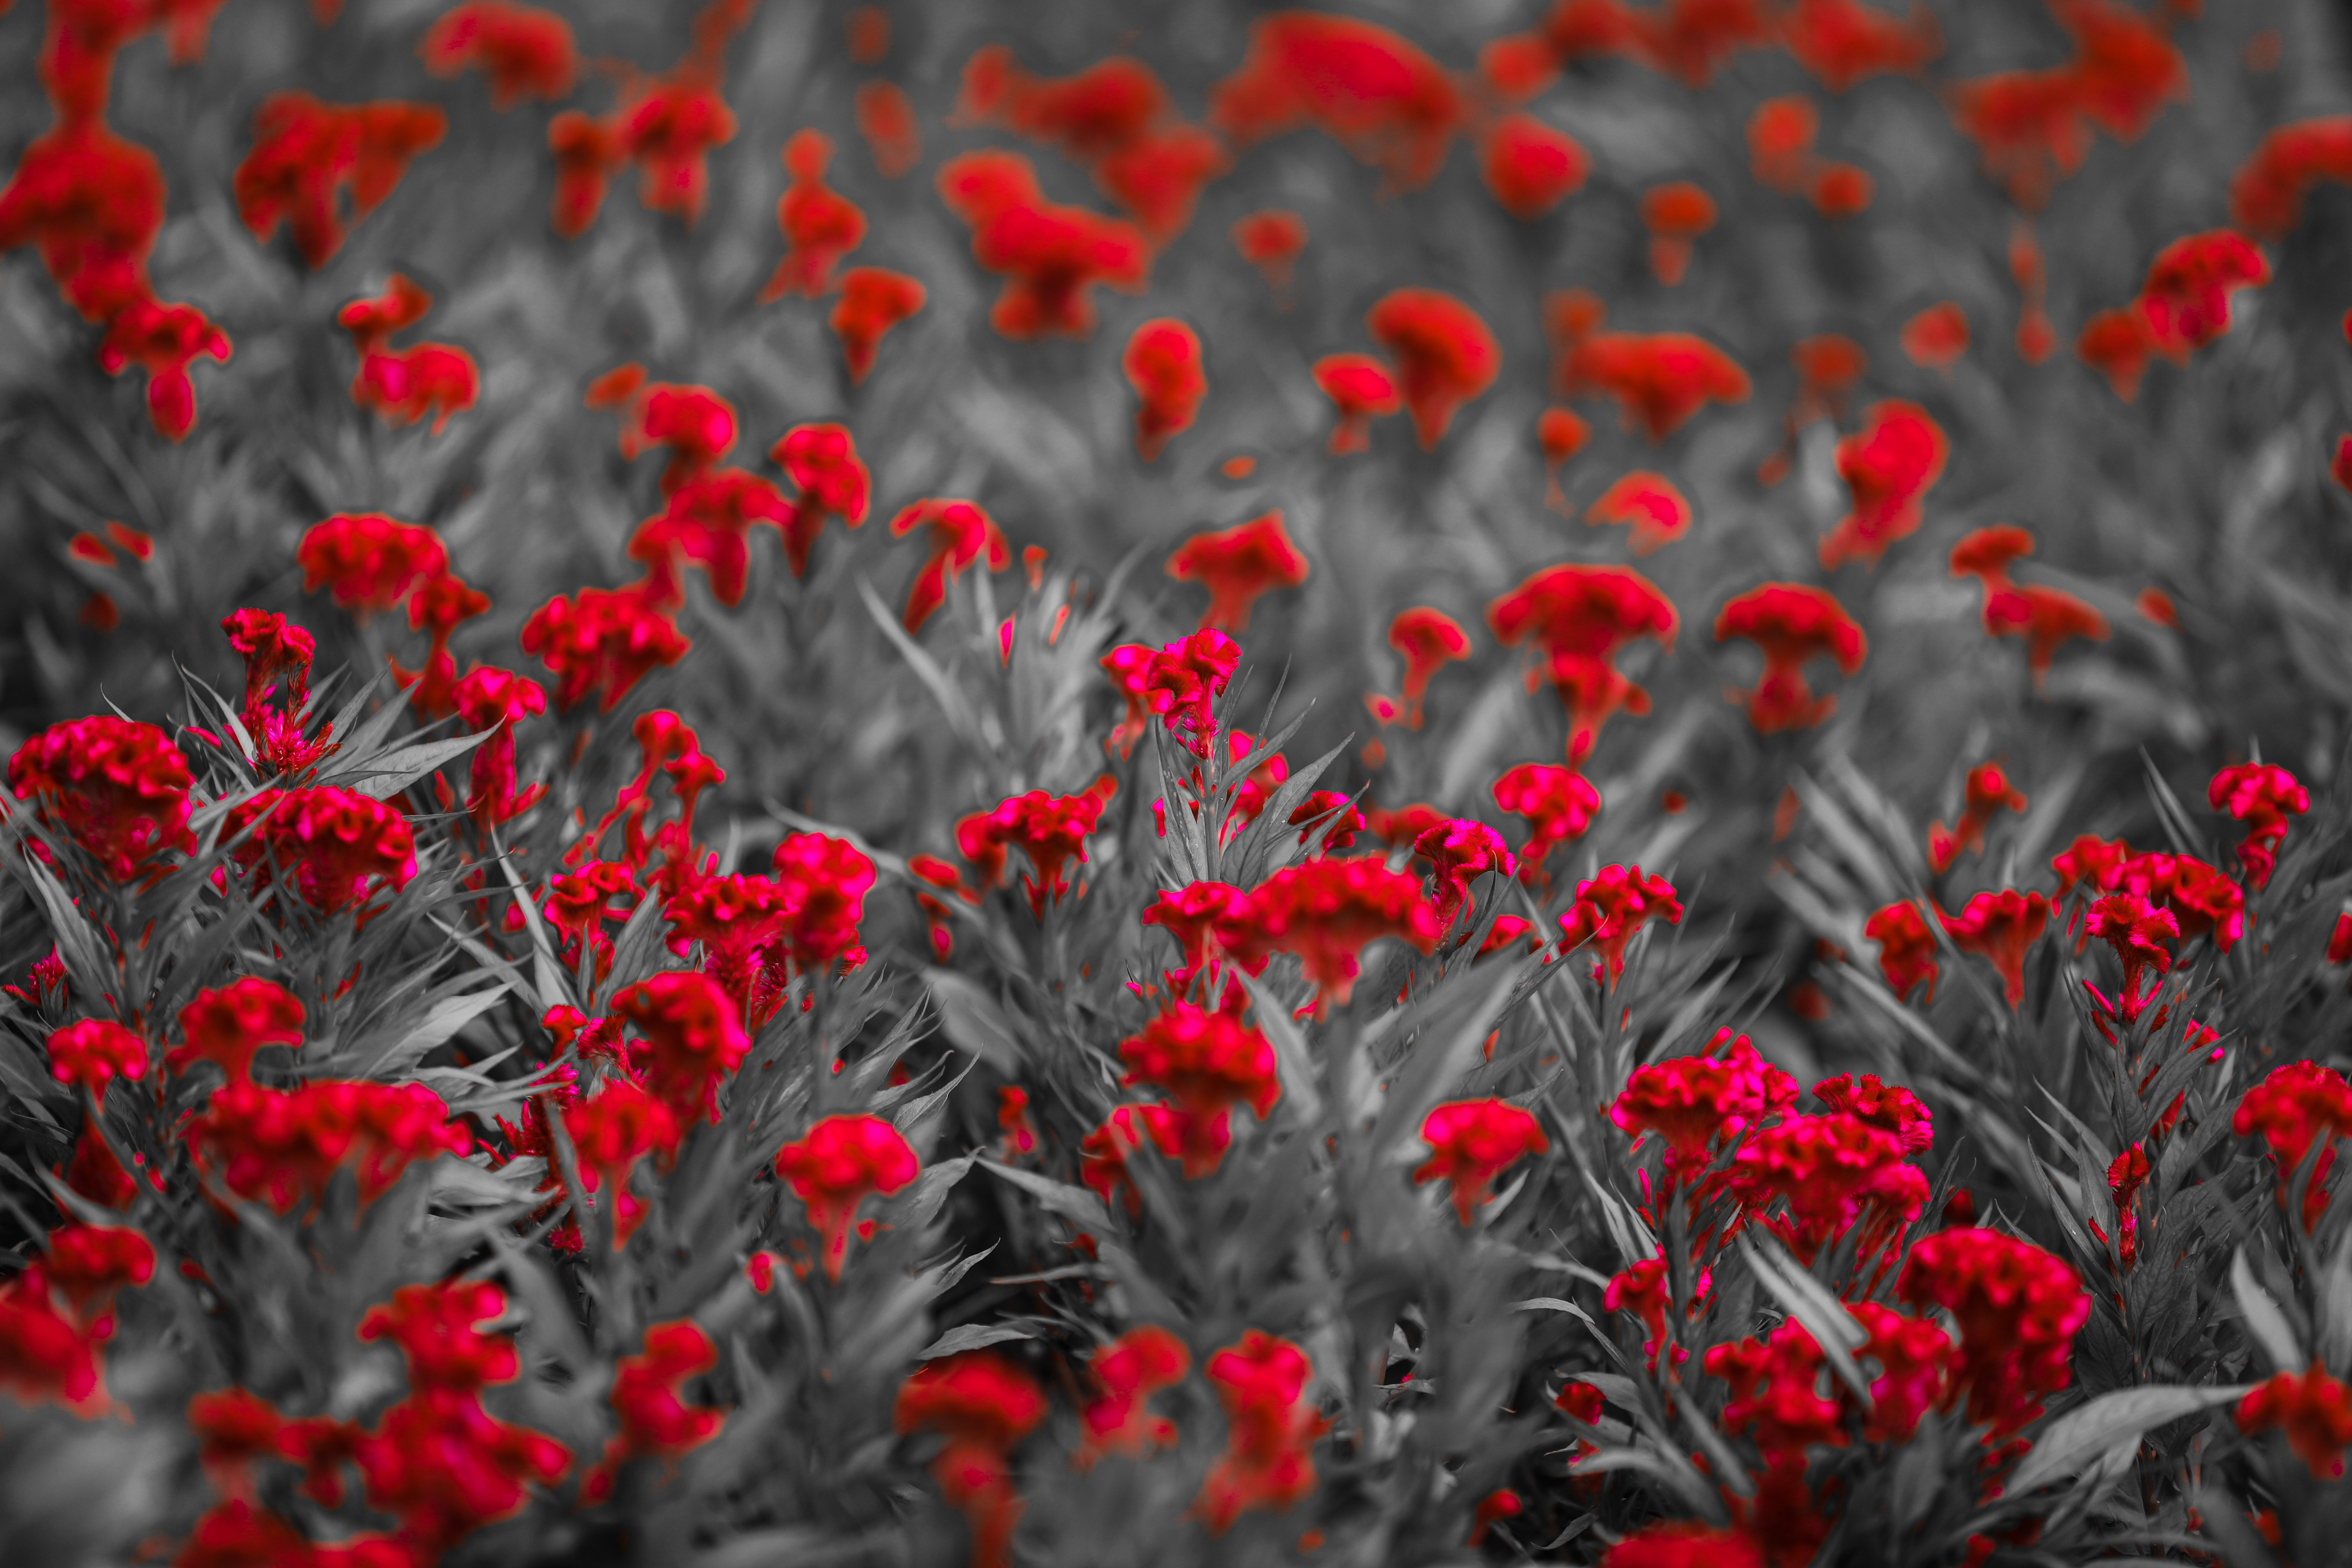 Free stock images with the color Red (#ff0000)